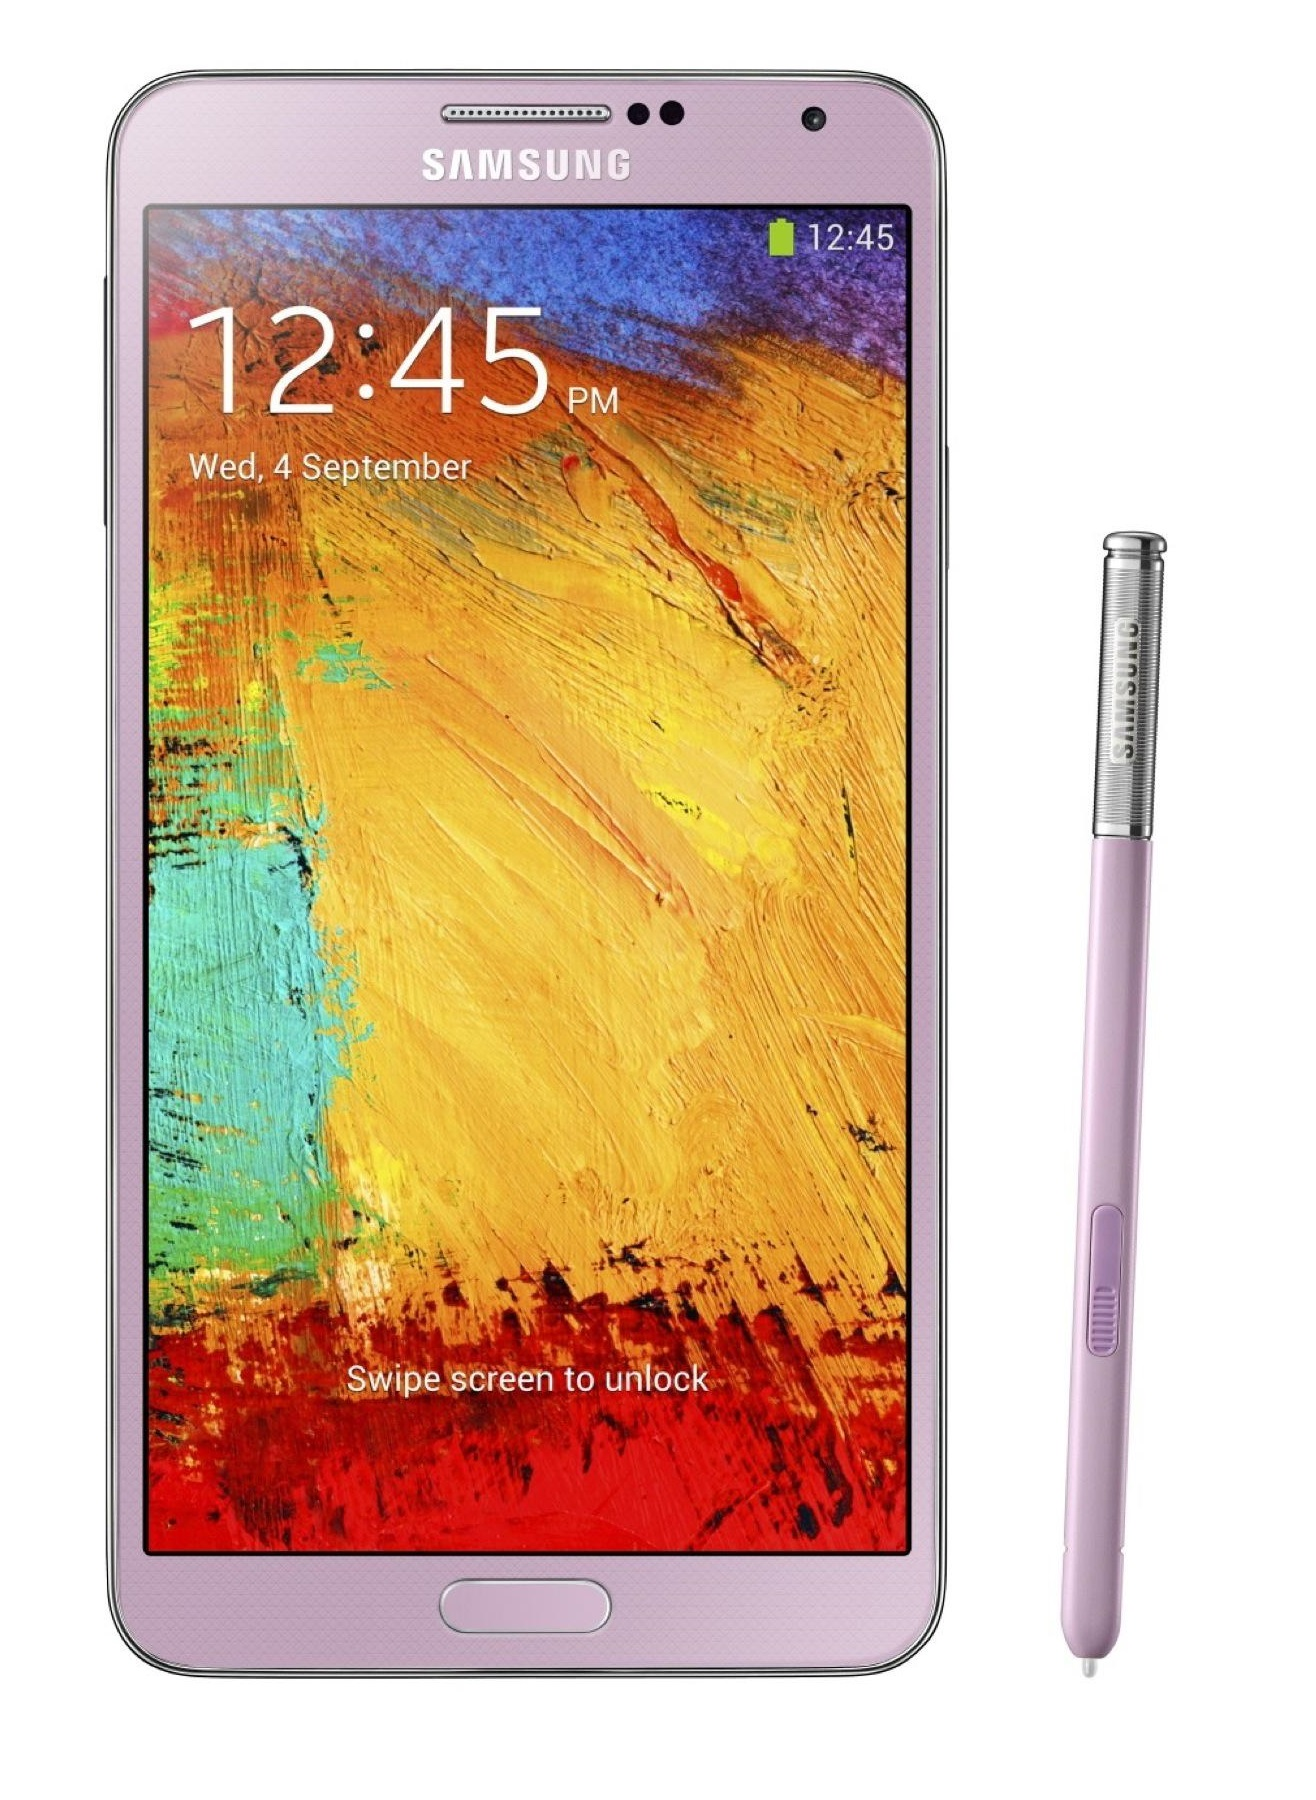 Samsung Galaxy Note 3 N9000 32GB Unlocked GSM Android Cell Phone - Pink